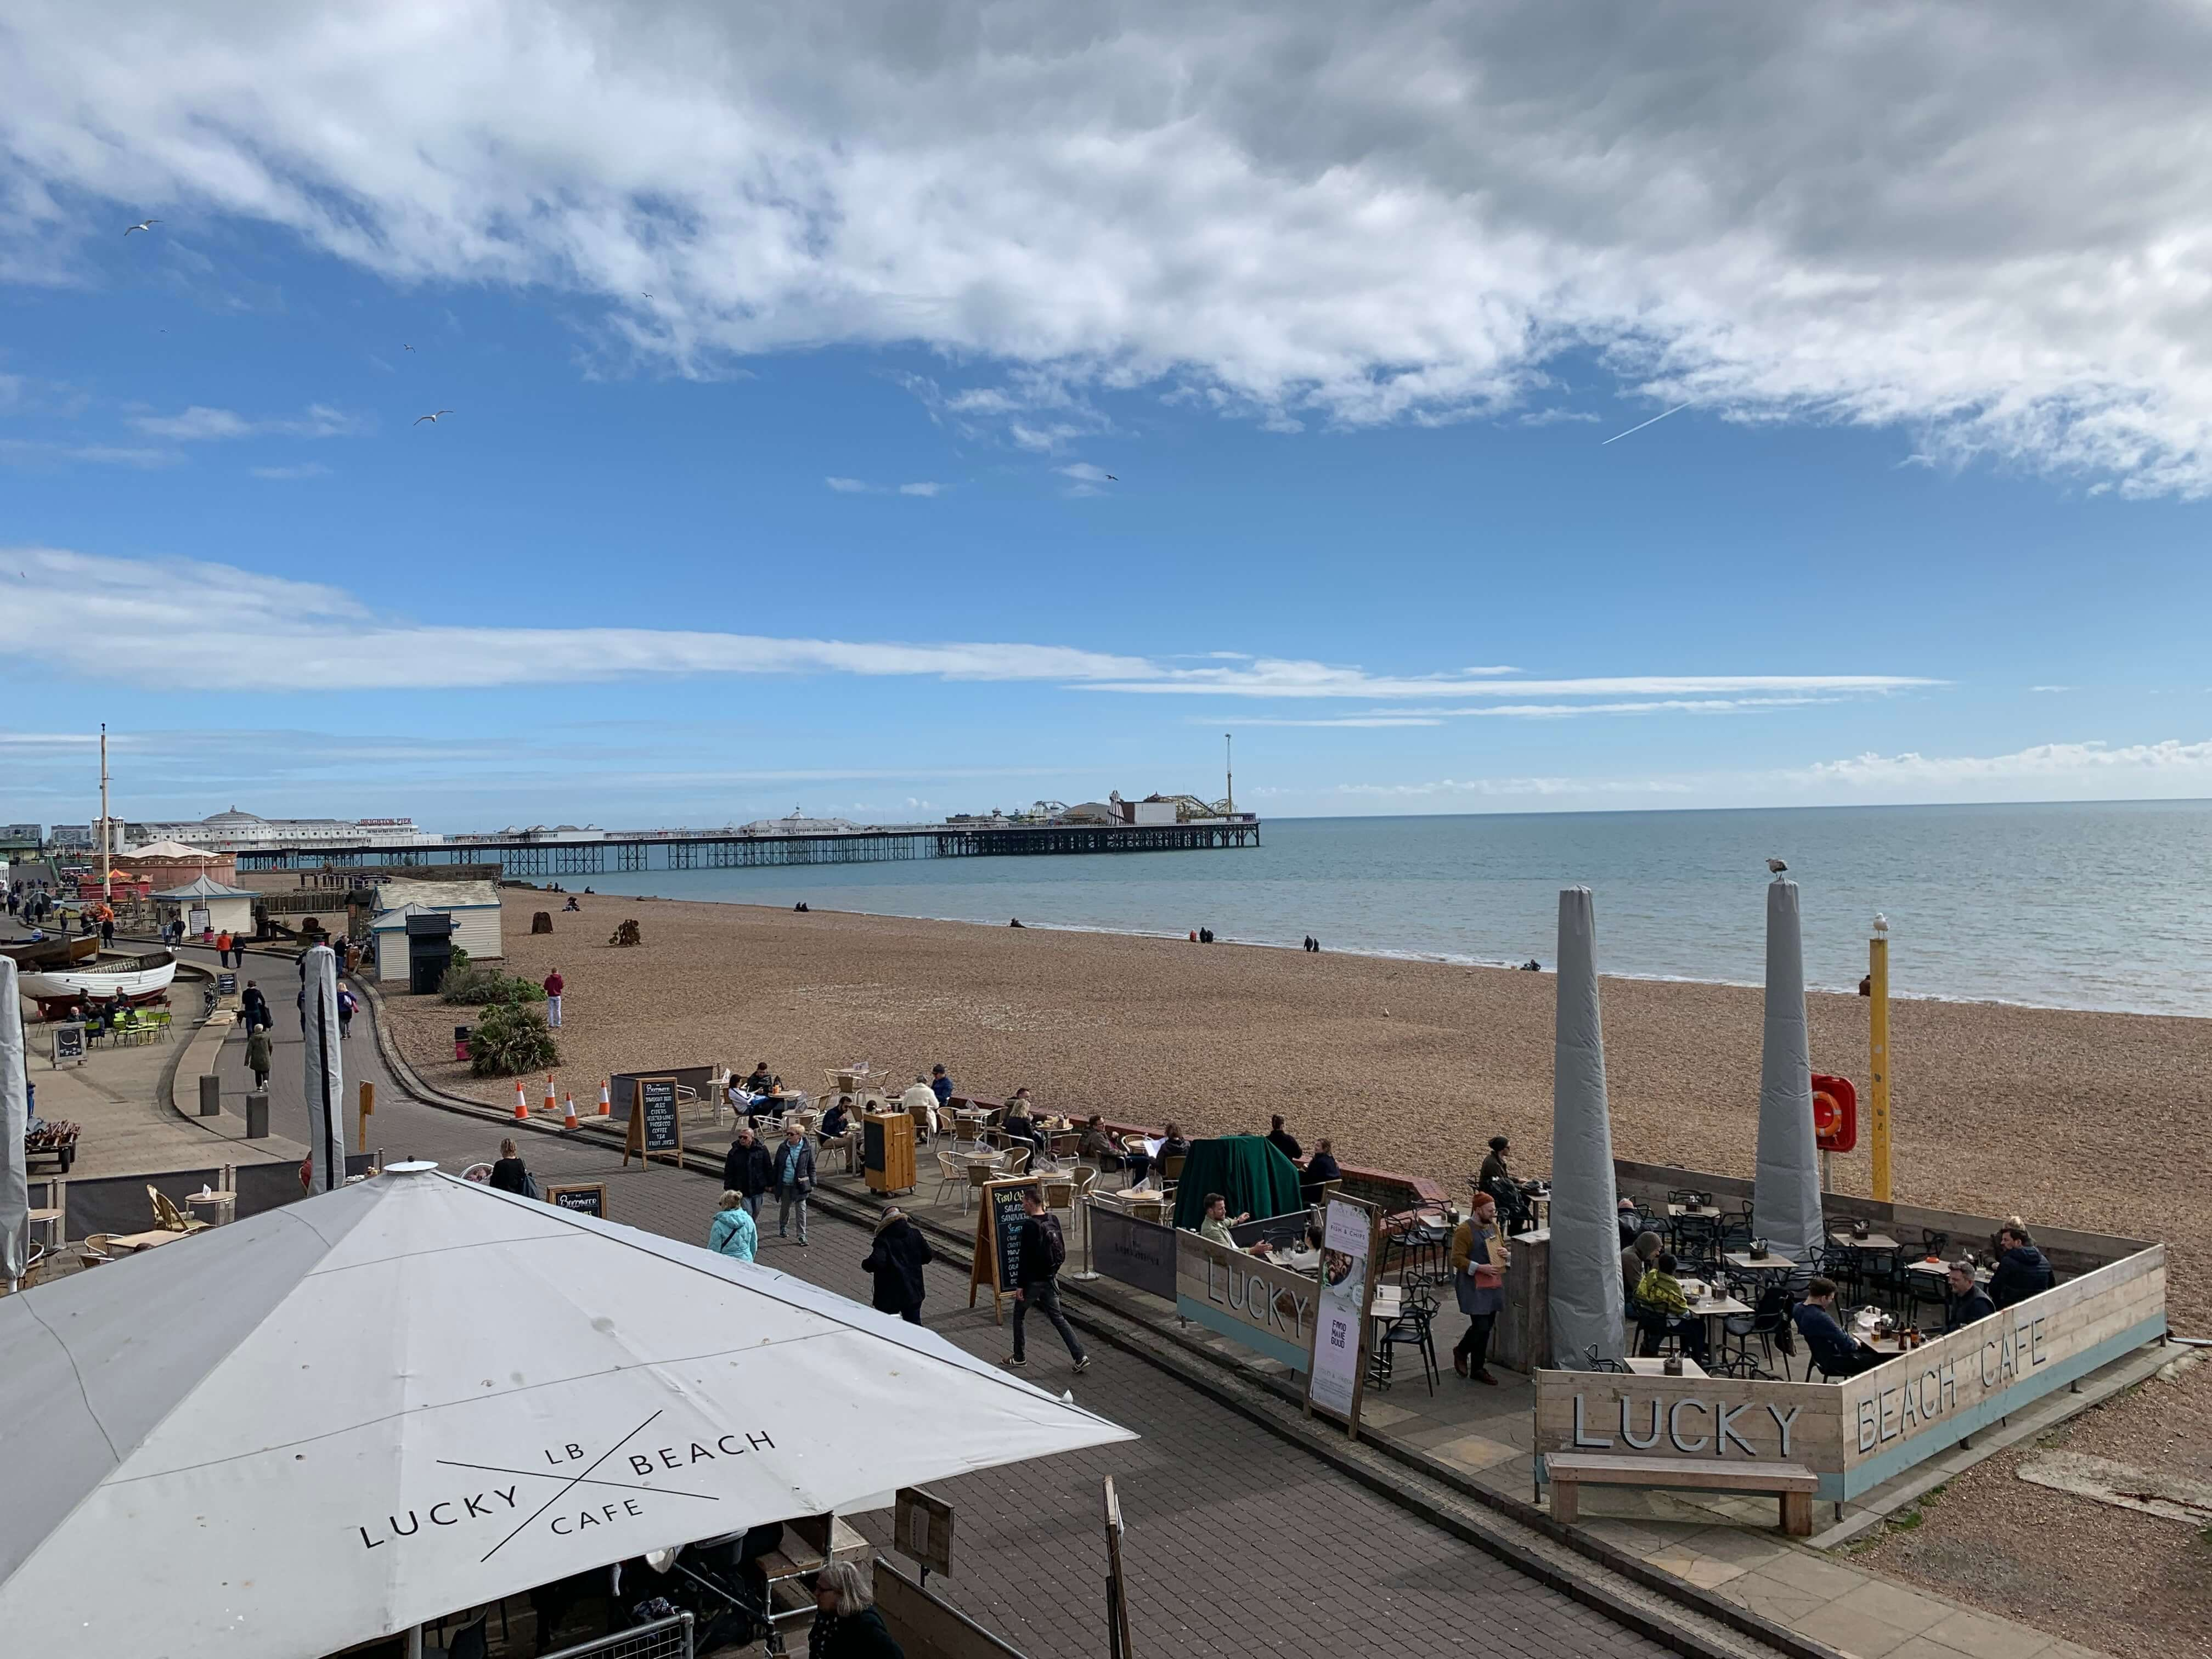 Brighton beach with the pier in the background